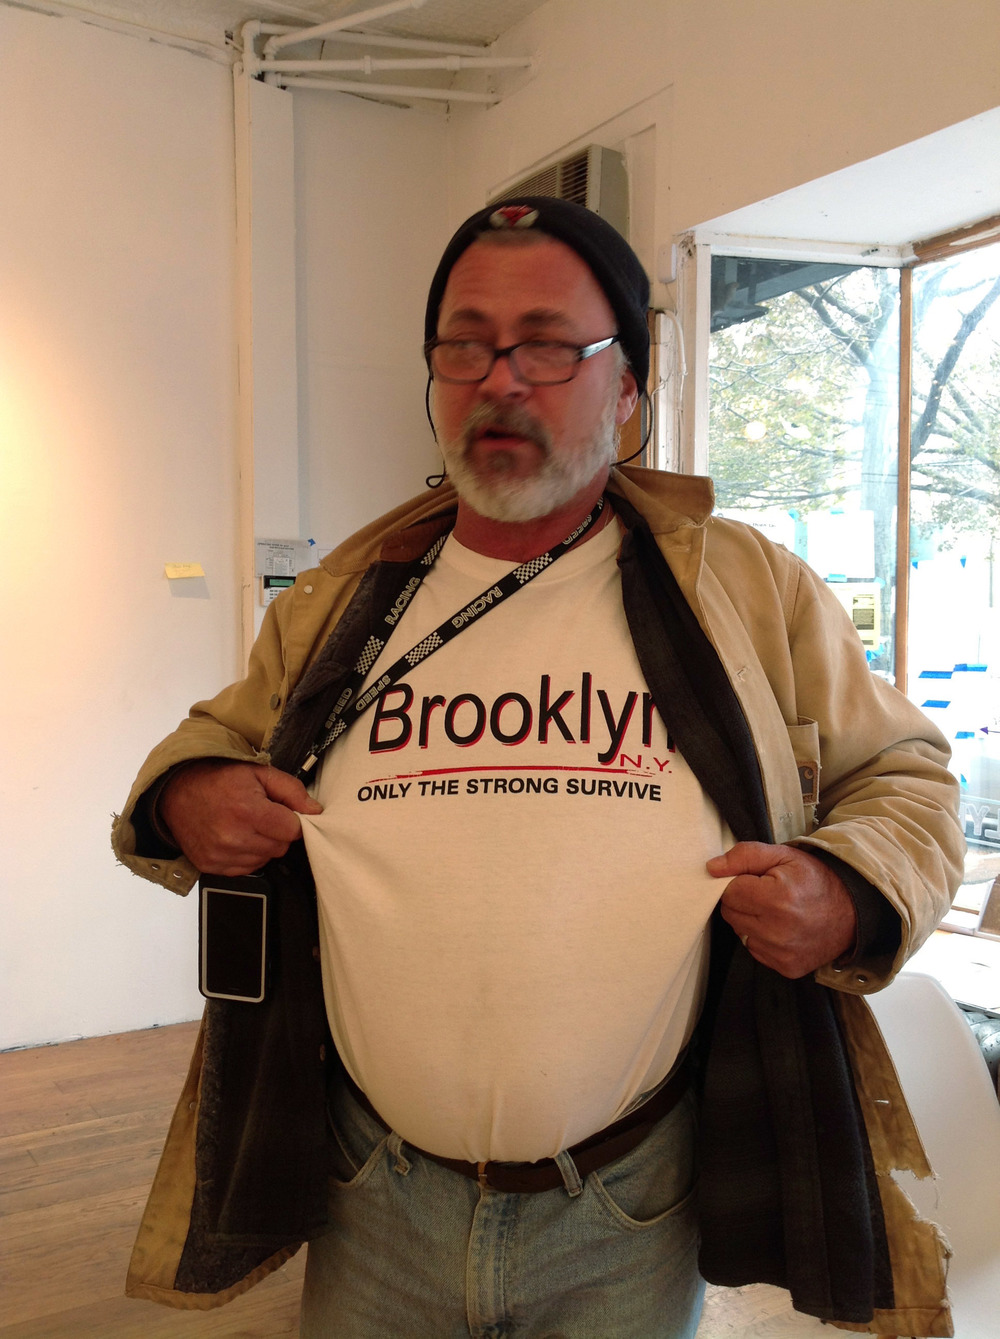 """Brooklyn, only the strrong survive"" on t-shir of Steve Tarpin of Steve's Key Lime Pie"